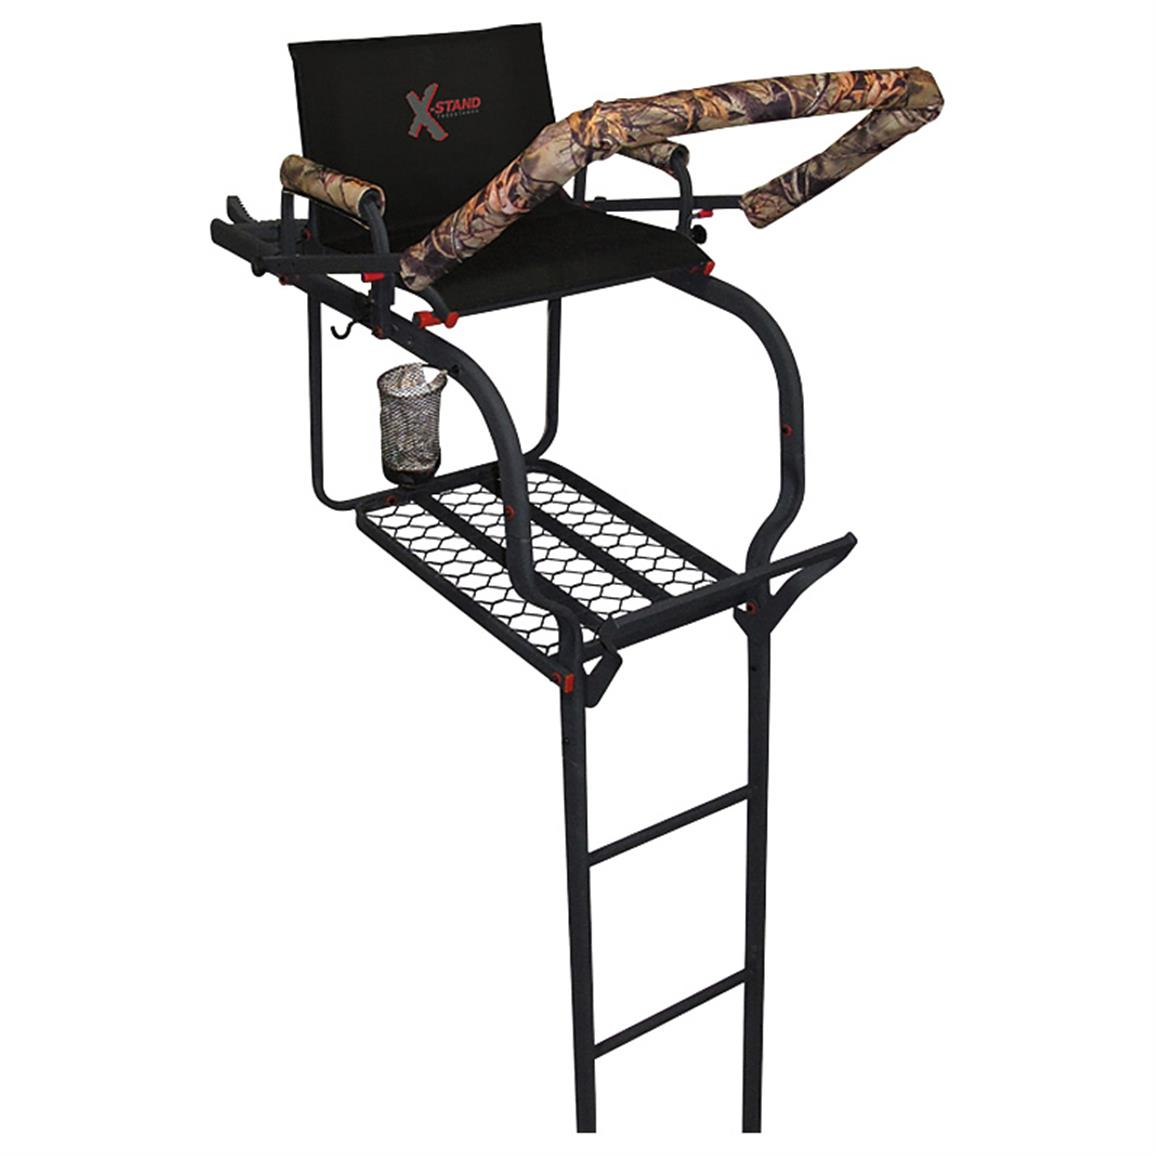 X-Stand Duke 20 foot Ladder Tree Stand • High in the sky, you'll see your prey sooner than ever!